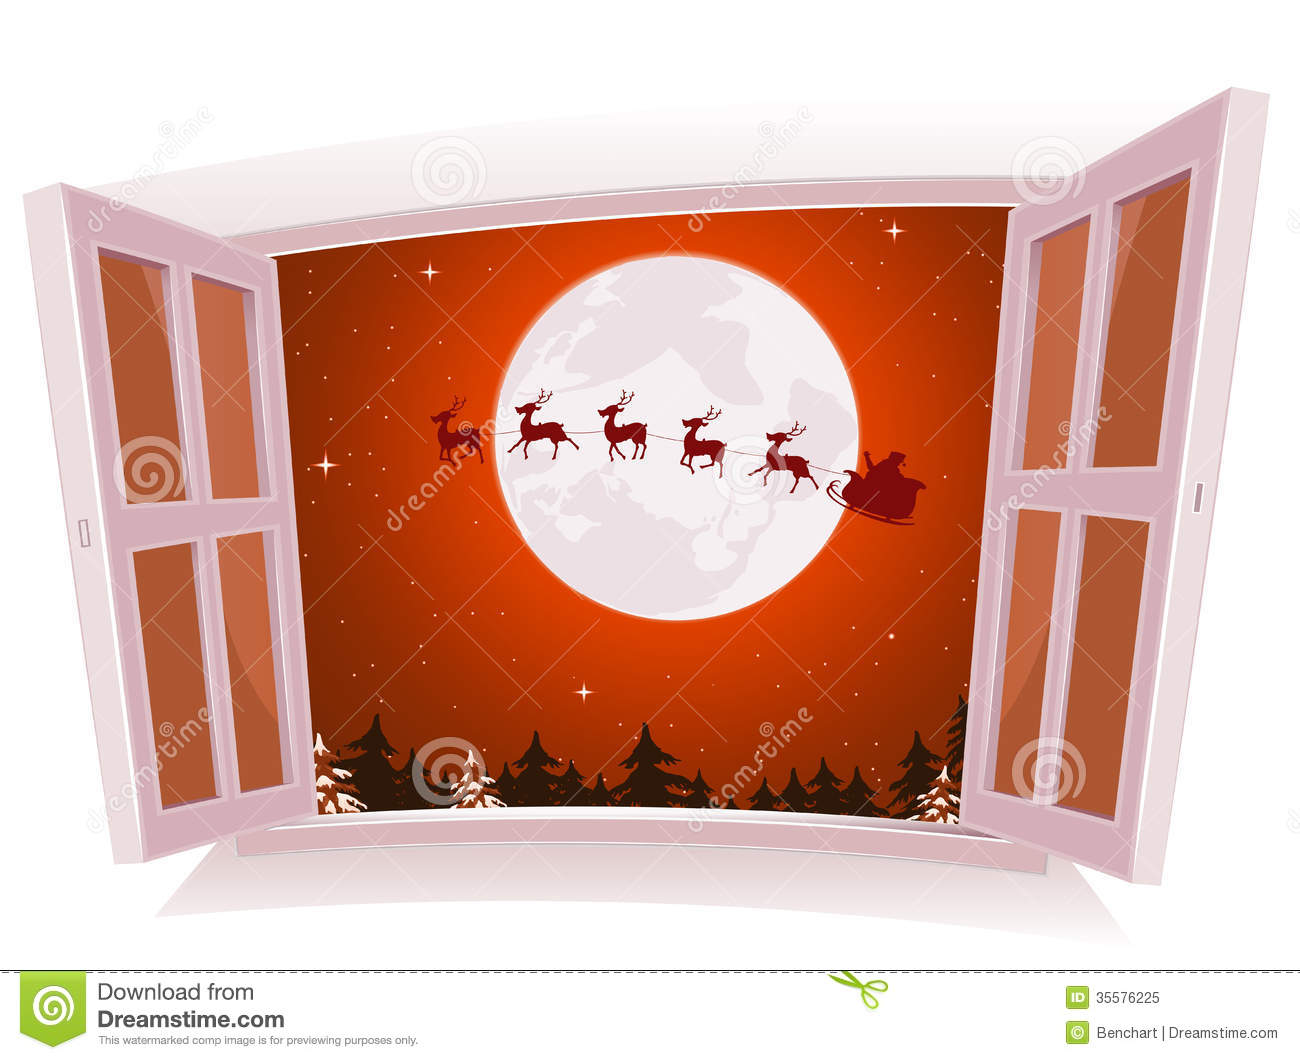 ... an open window, with santa character and reindeer flying in sleigh